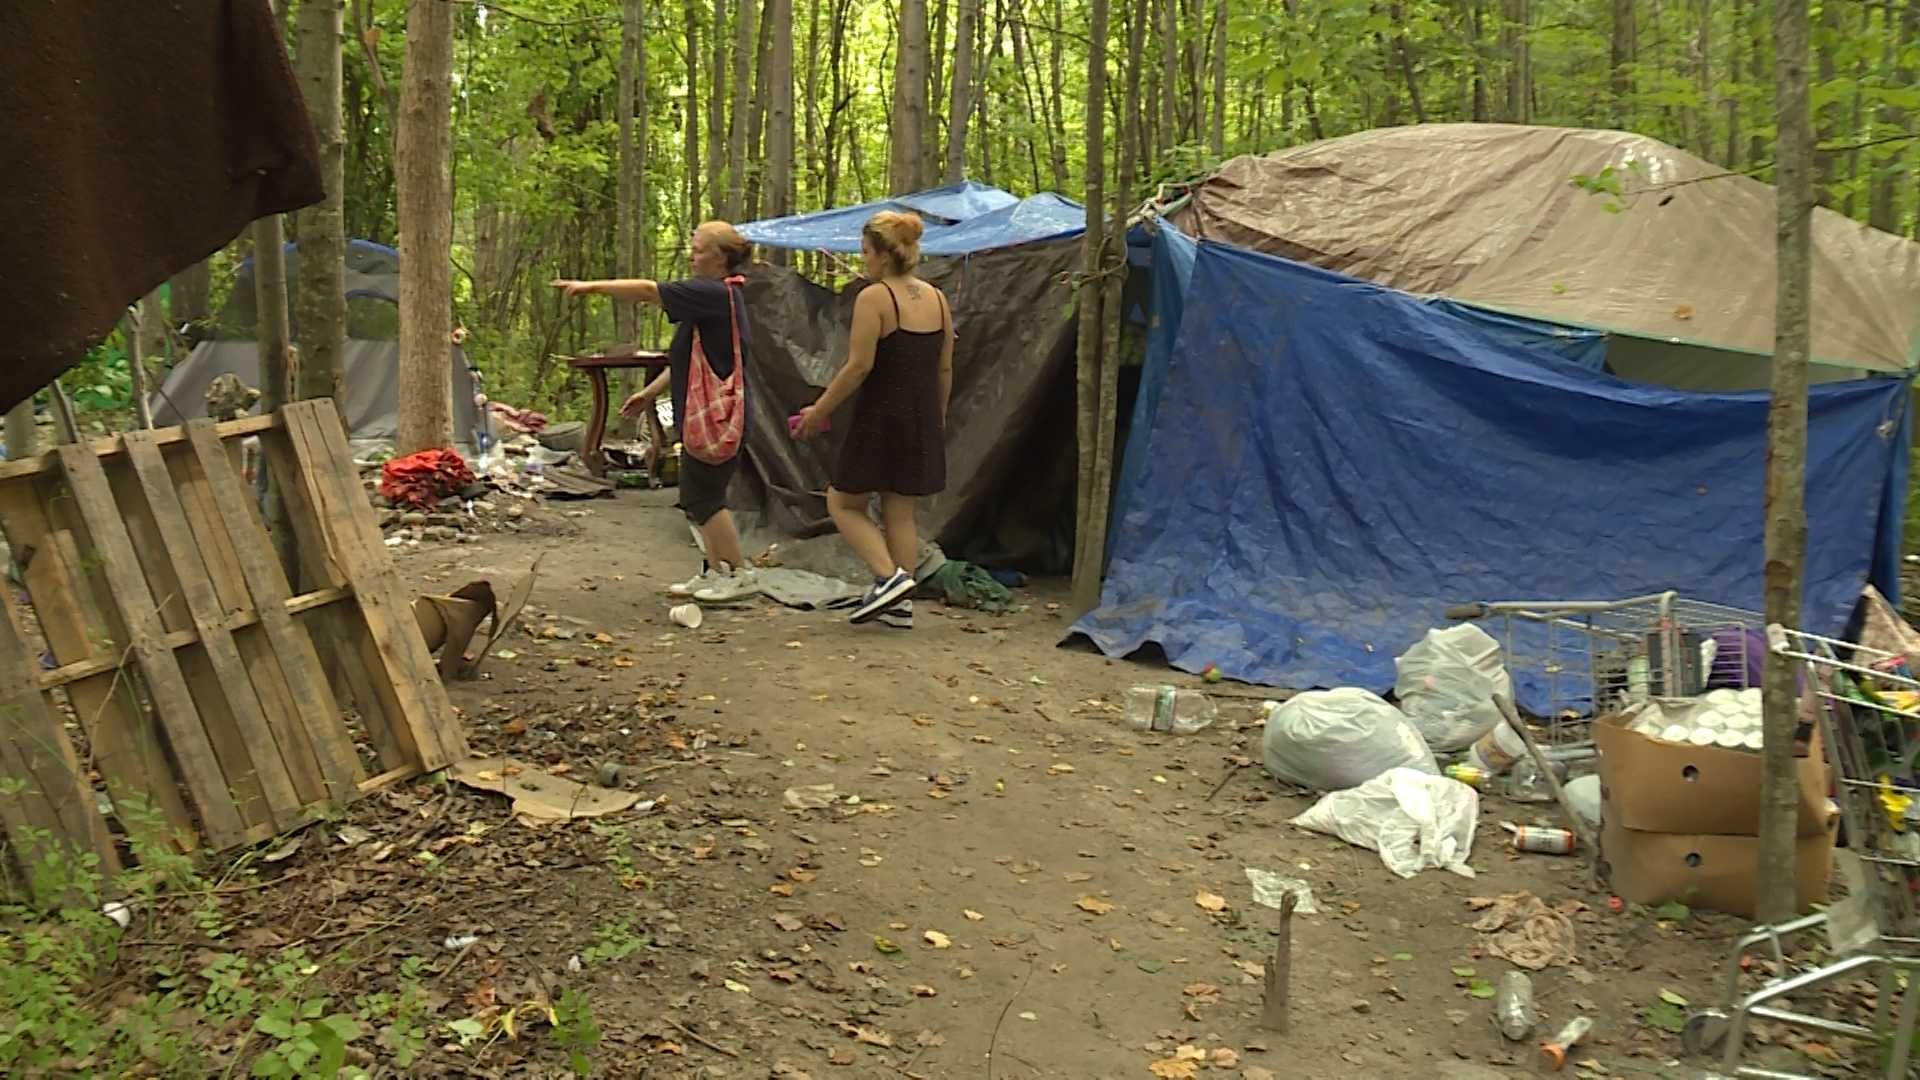 Homeless people living in tents behind a Portland shopping area have been ordered to vacate.